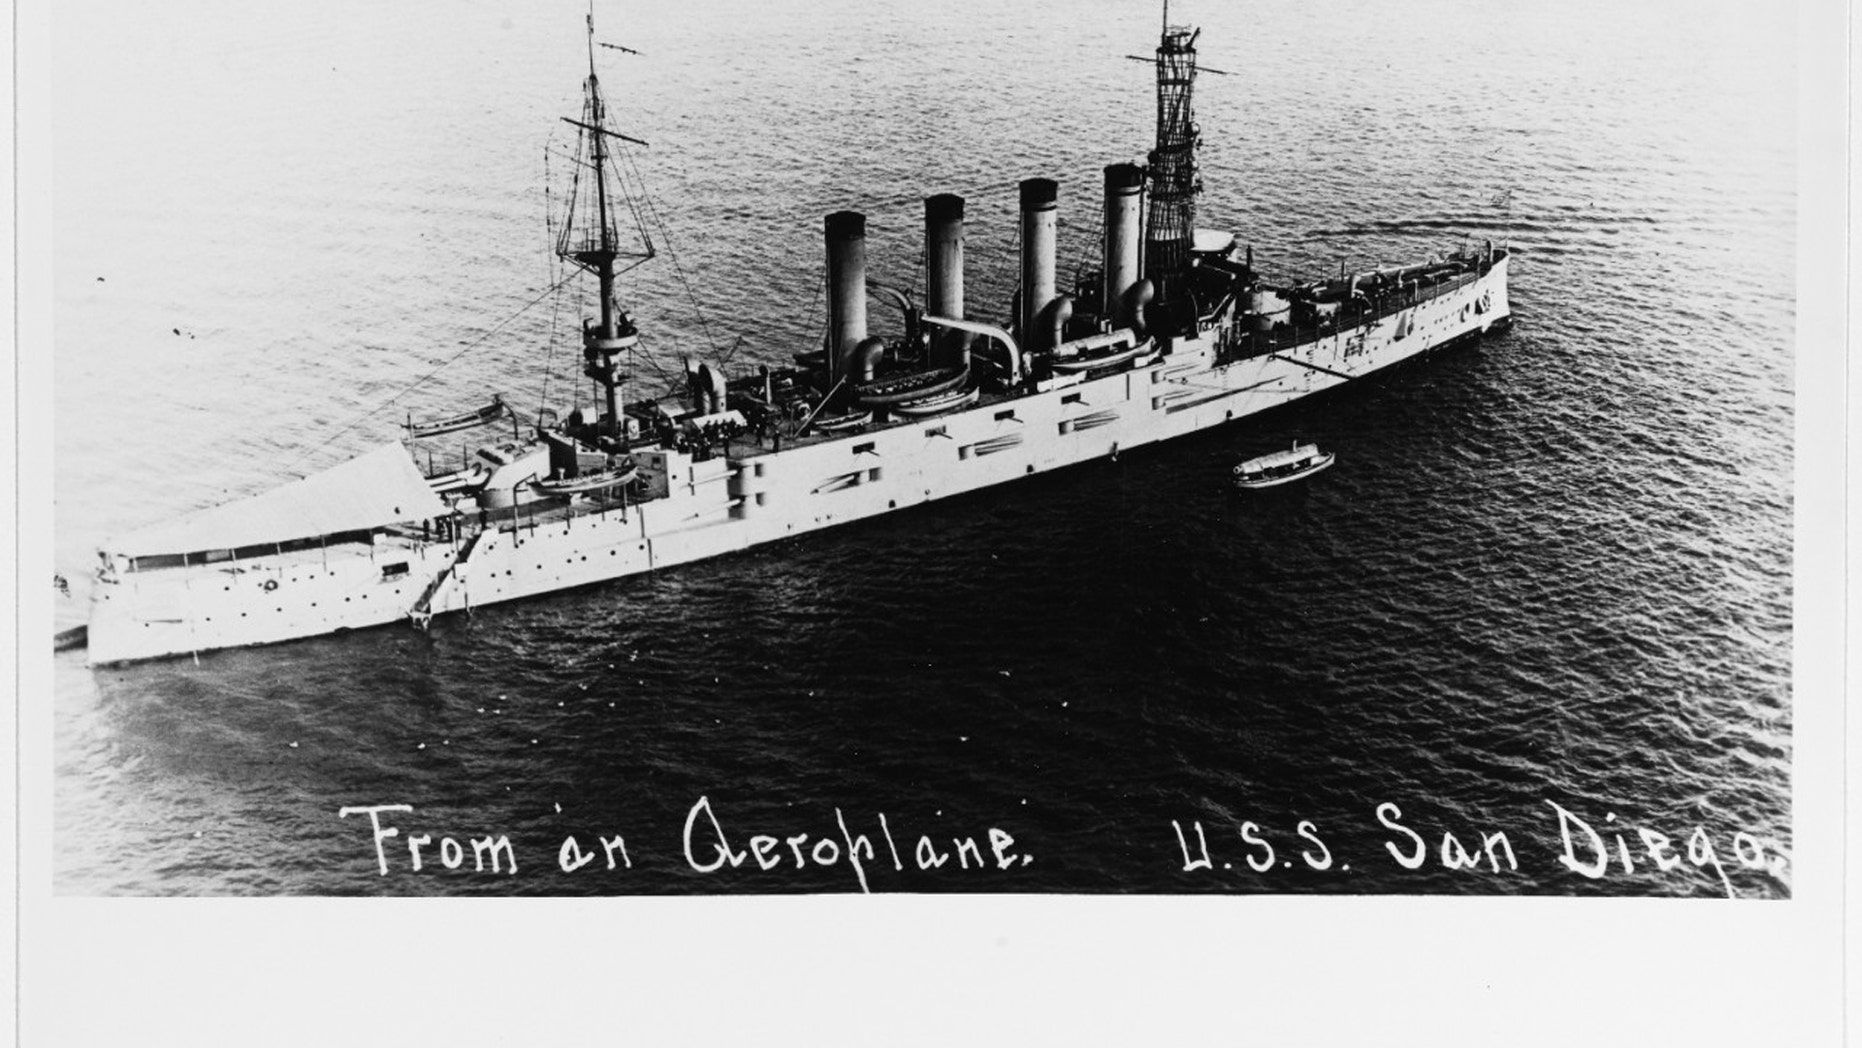 USS San Diego photographed from an airplane in San Diego harbor, Calif., on March 28, 1916. (Credit: Thomas P. Naughton, 1973. U.S. Naval History and Heritage Command Photograph.)